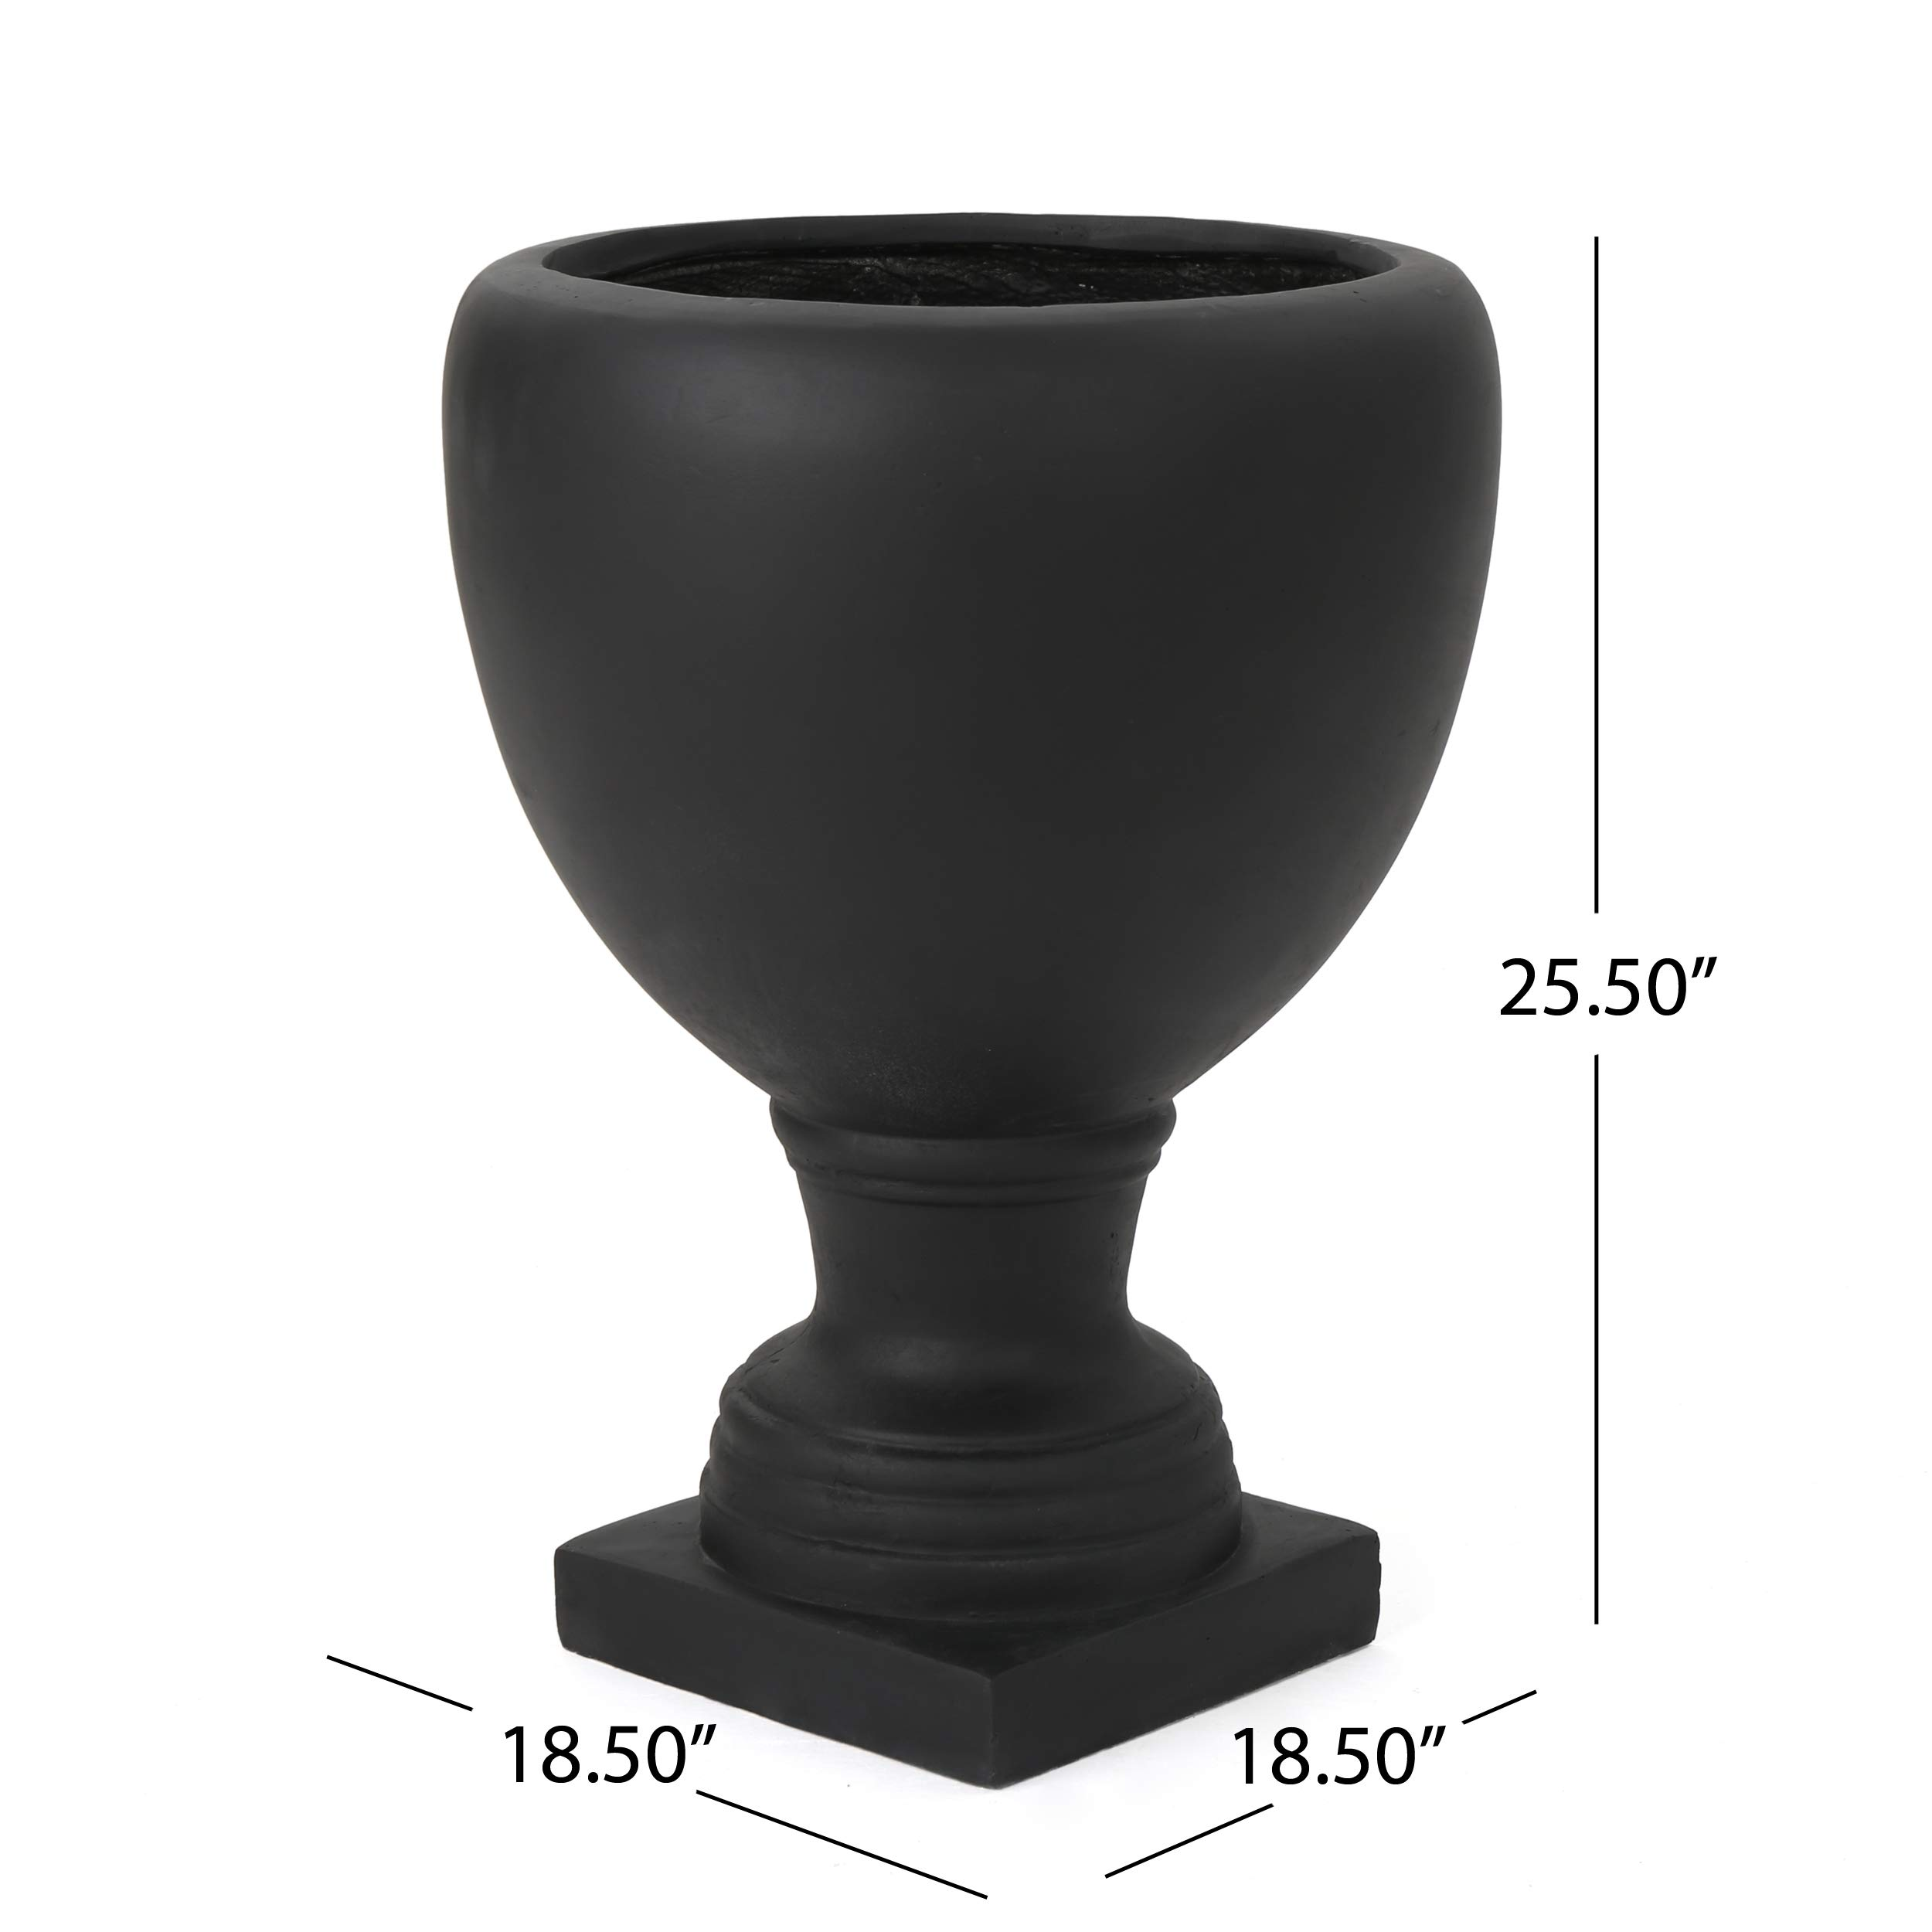 Great Deal Furniture Shiny Outdoor Matte Black Finished Cast Stone Urn by Great Deal Furniture (Image #8)